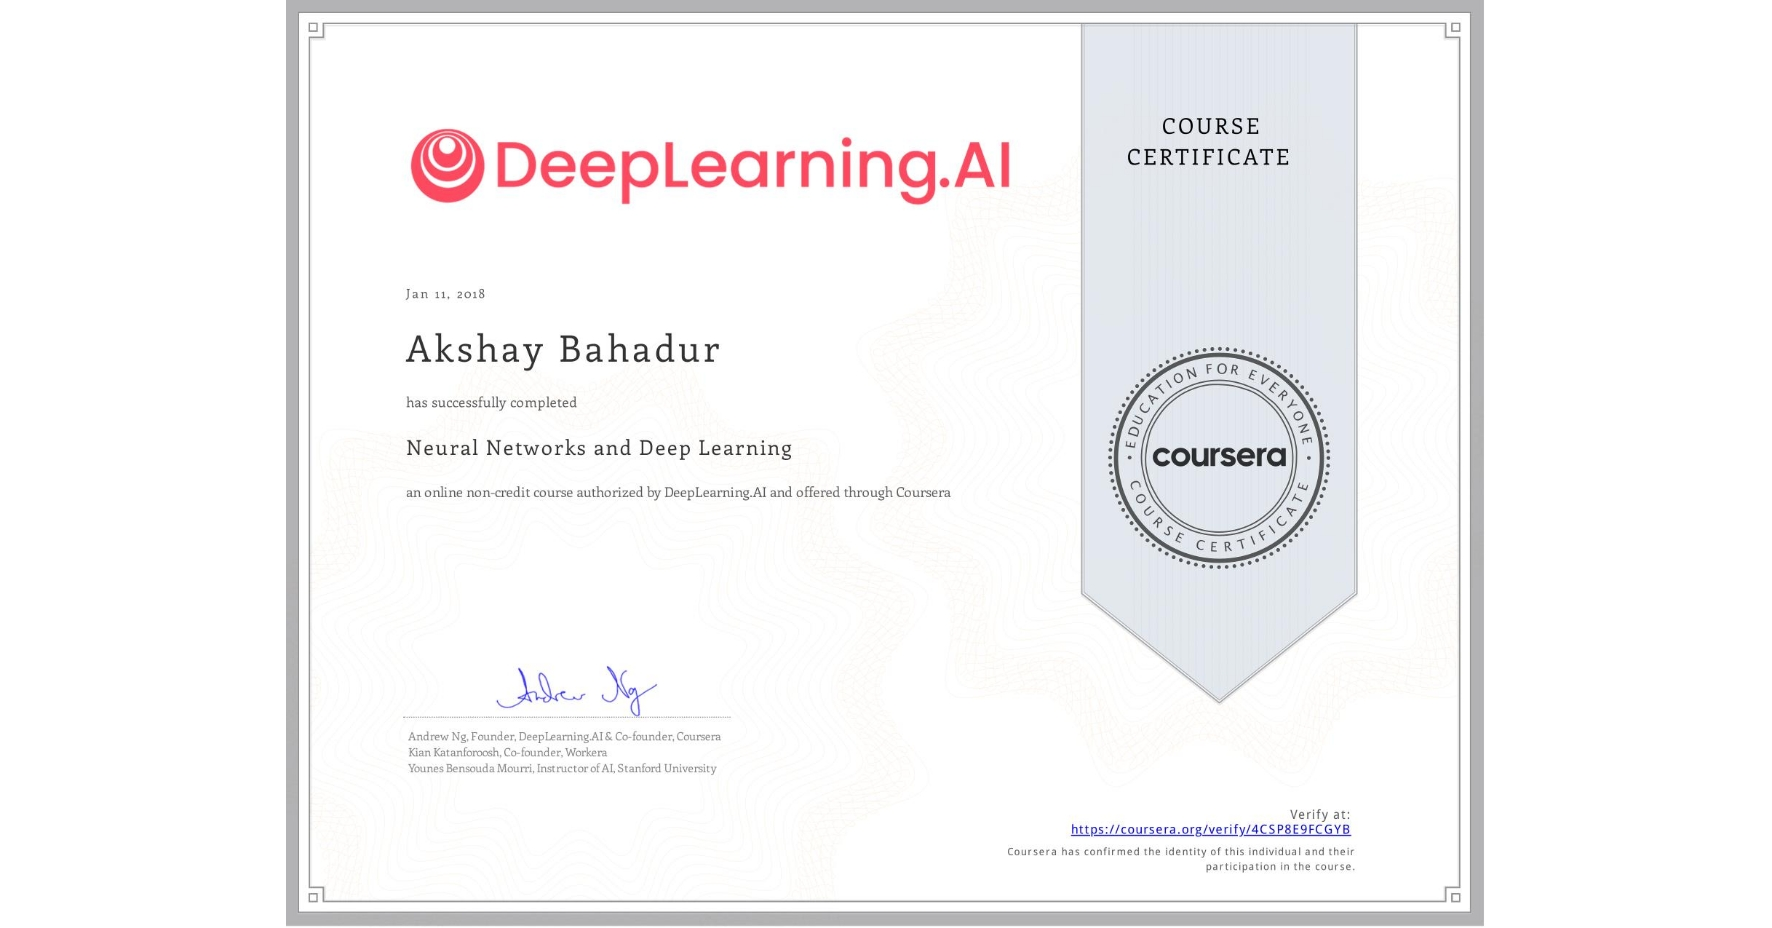 View certificate for Akshay Bahadur, Neural Networks and Deep Learning, an online non-credit course authorized by DeepLearning.AI and offered through Coursera